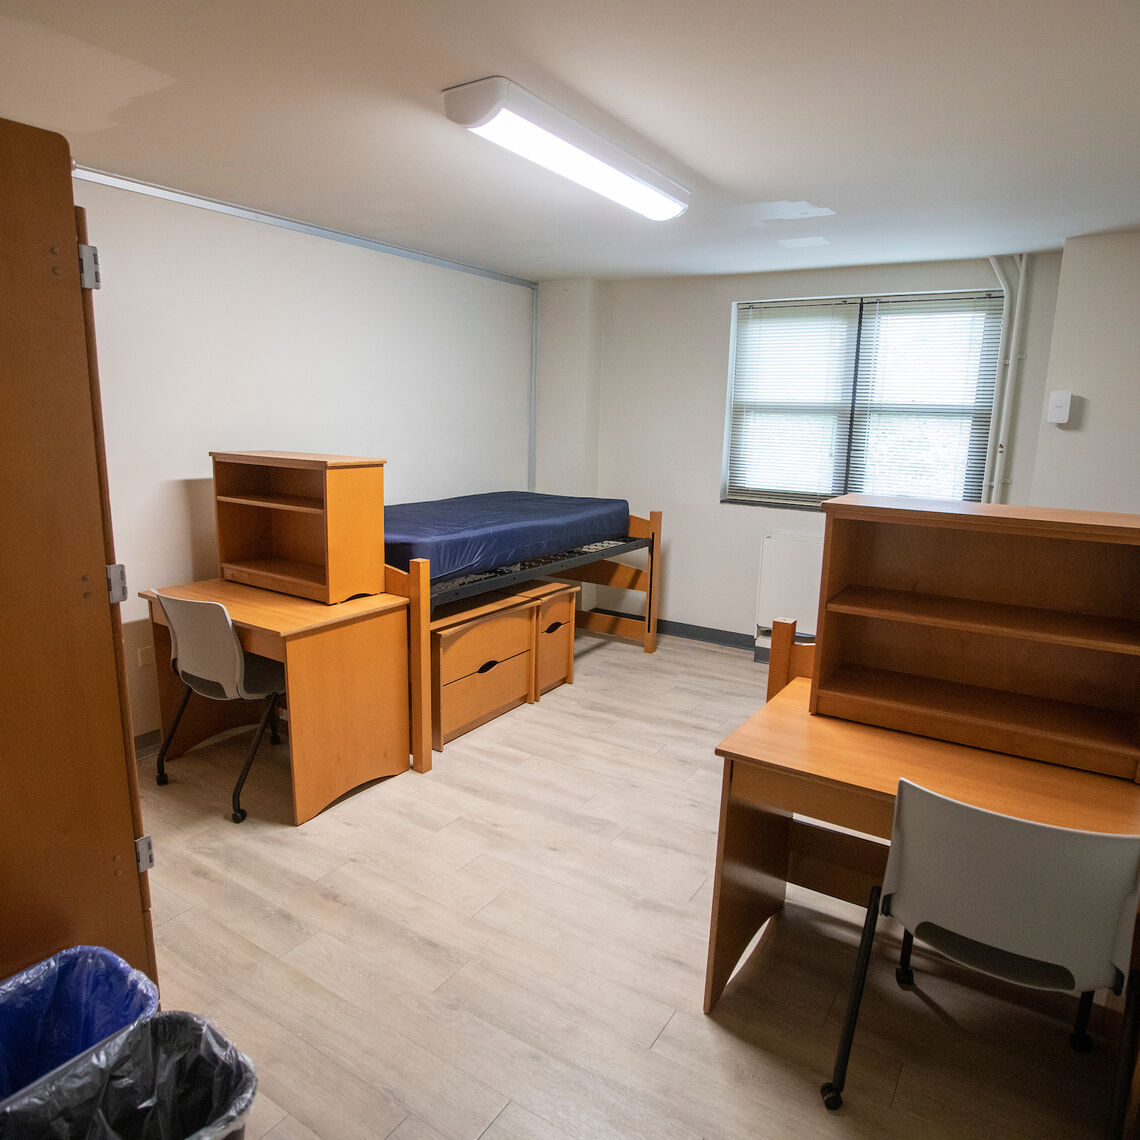 Typical room in North Benjamin Franklin Hall (Ware College House)